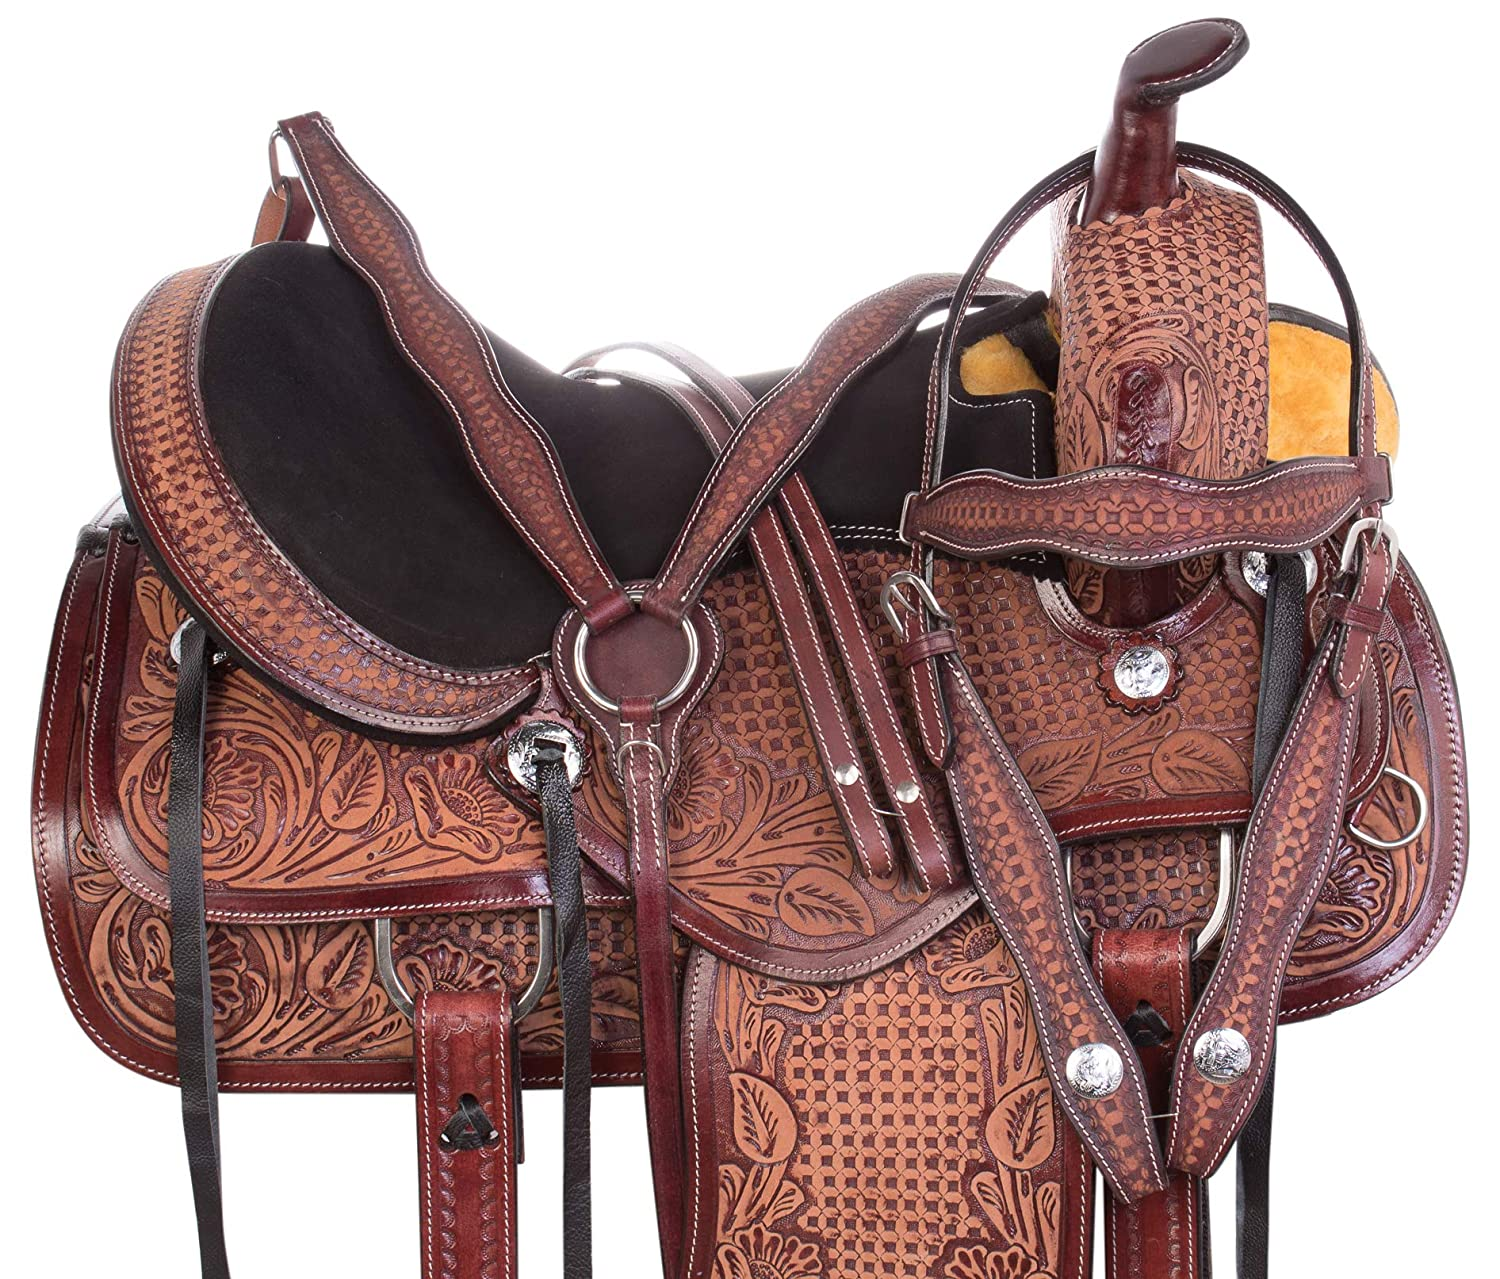 AceRugs All Natural Cowhide Western Leather Horse Saddle Comfy SEAT Pleasure Trail Barrel Racing Hand Tooled Premium Saddle TACK Set Bridle Breast Collar